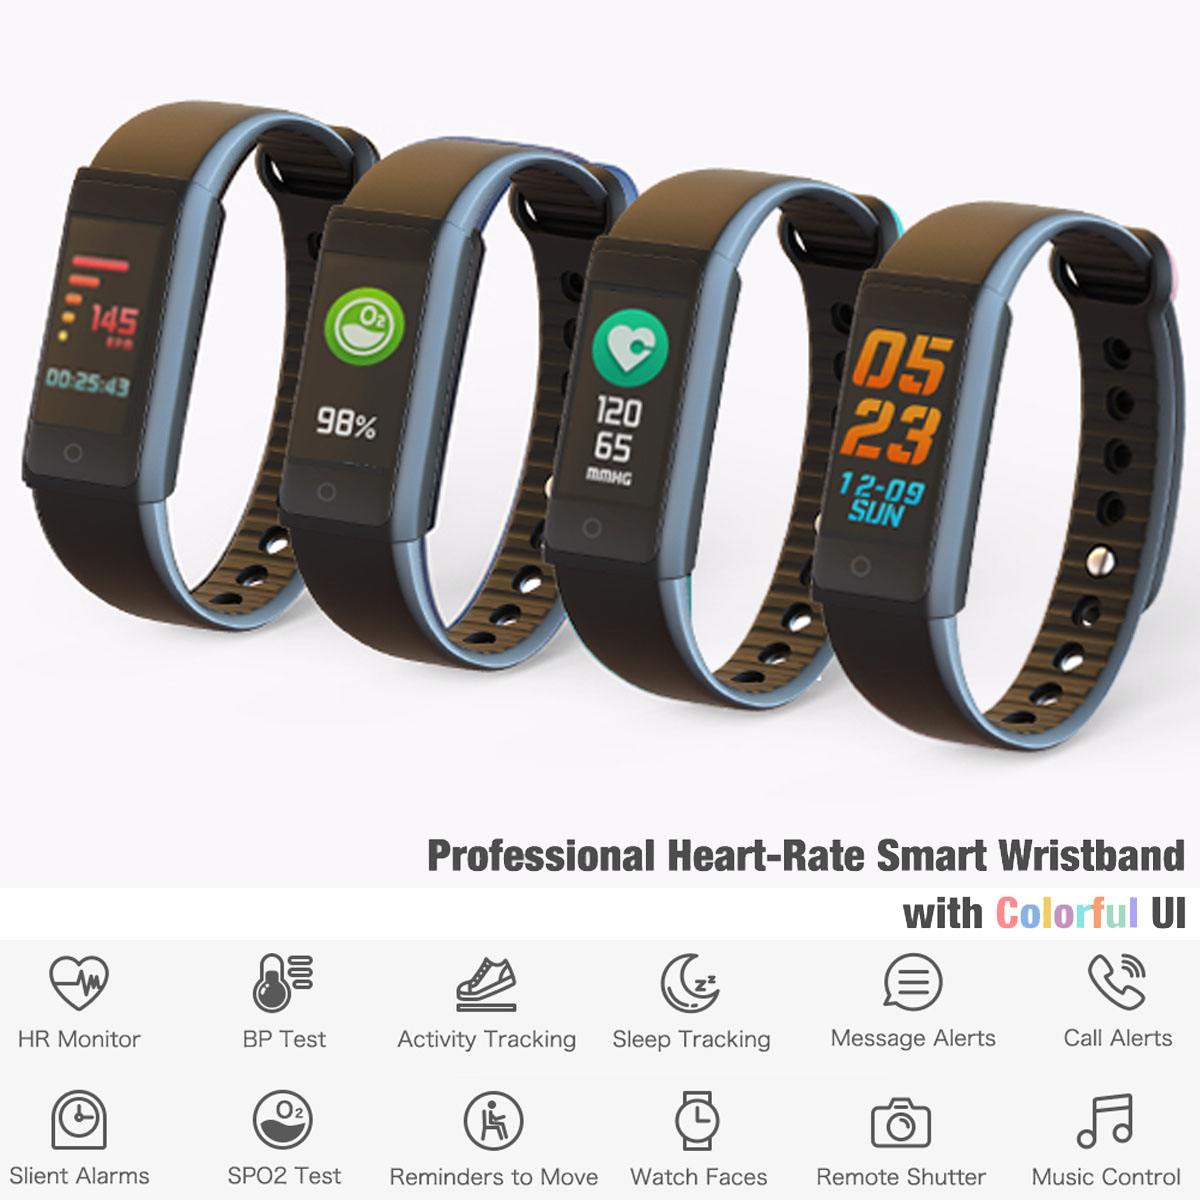 X6s Fitness Tracker by Indigi - Fitness Monitoring Bracelet - Heart Rate Sensor + Pedometer + SMS/Call Alerts + Update